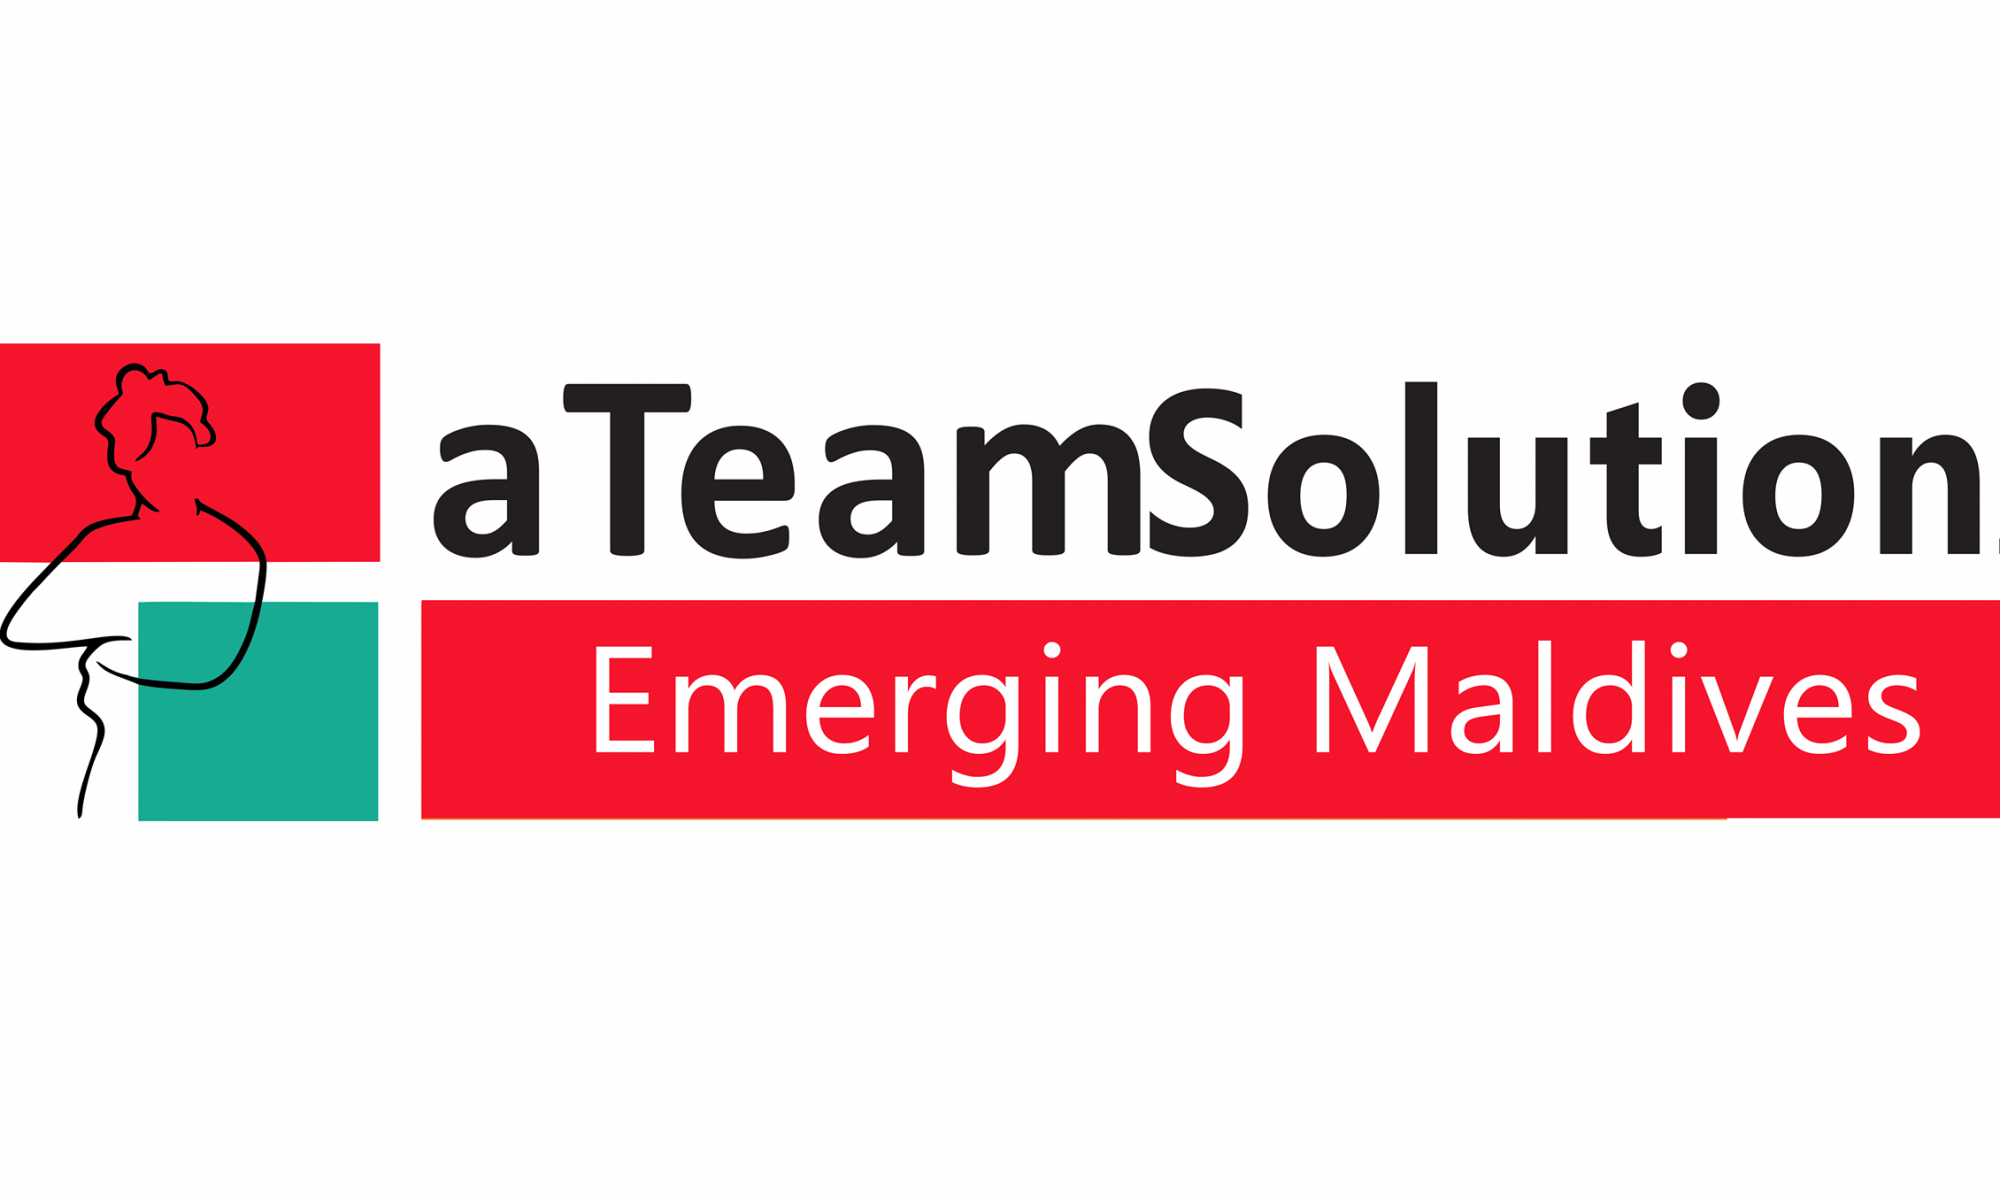 aTeamSolutionz - Emerging Maldives